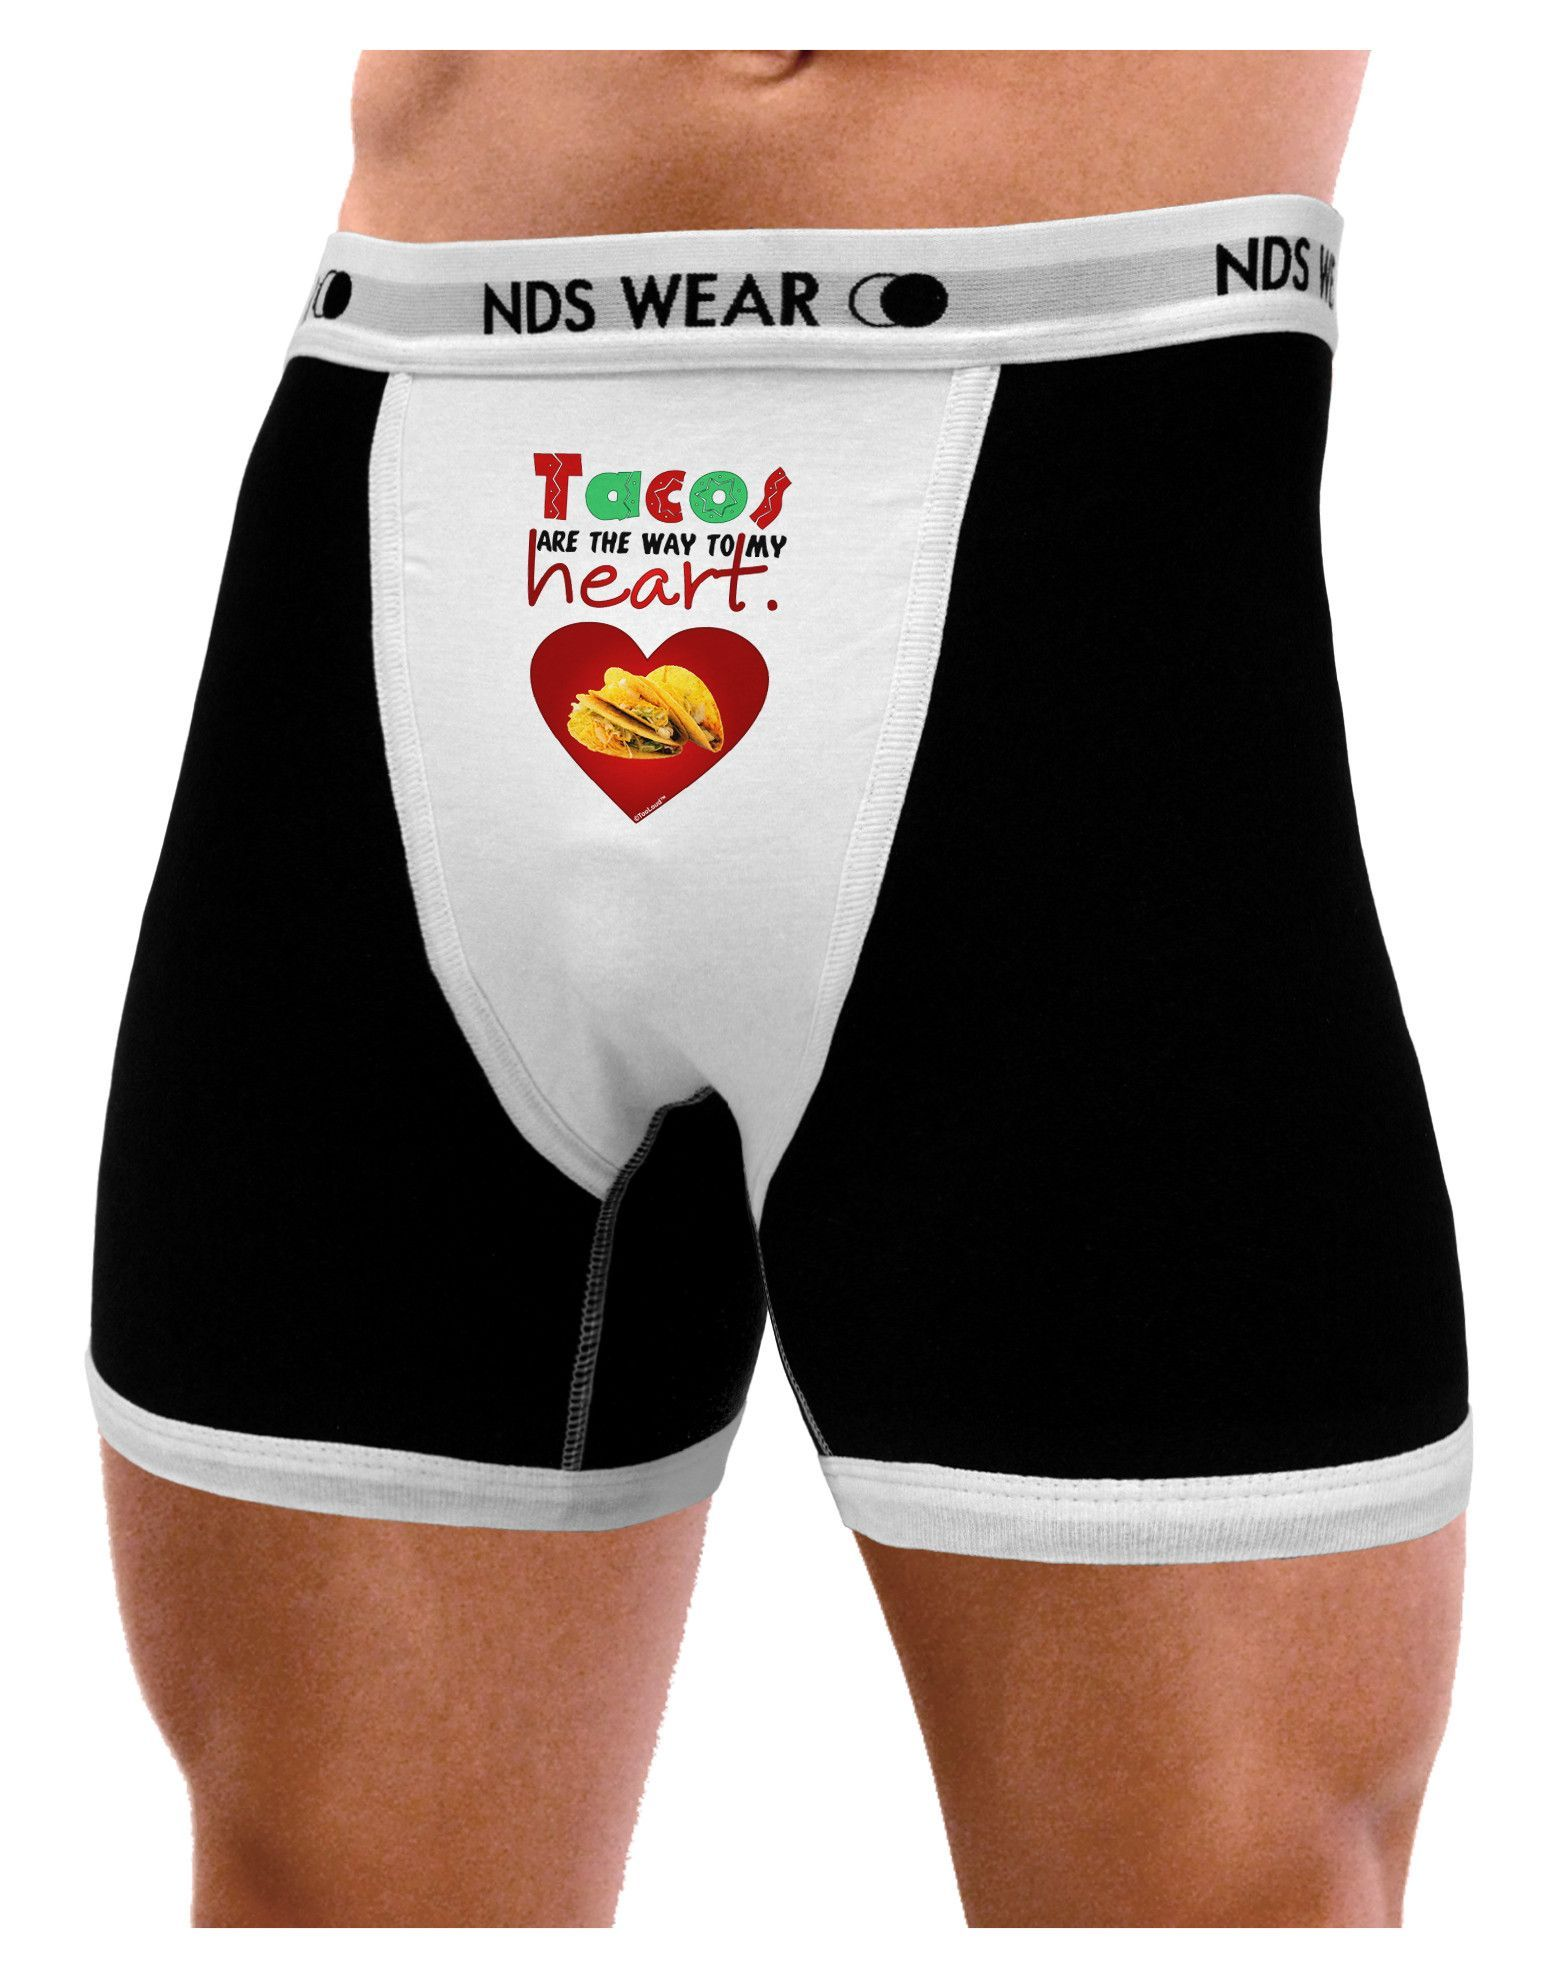 8c5b17d6ed35 ... NDS Wear Boxer Brief Underwear. This print is perfect for all of the  die-hard taco fanatics out there. These fun printed garments are a great  personal ...